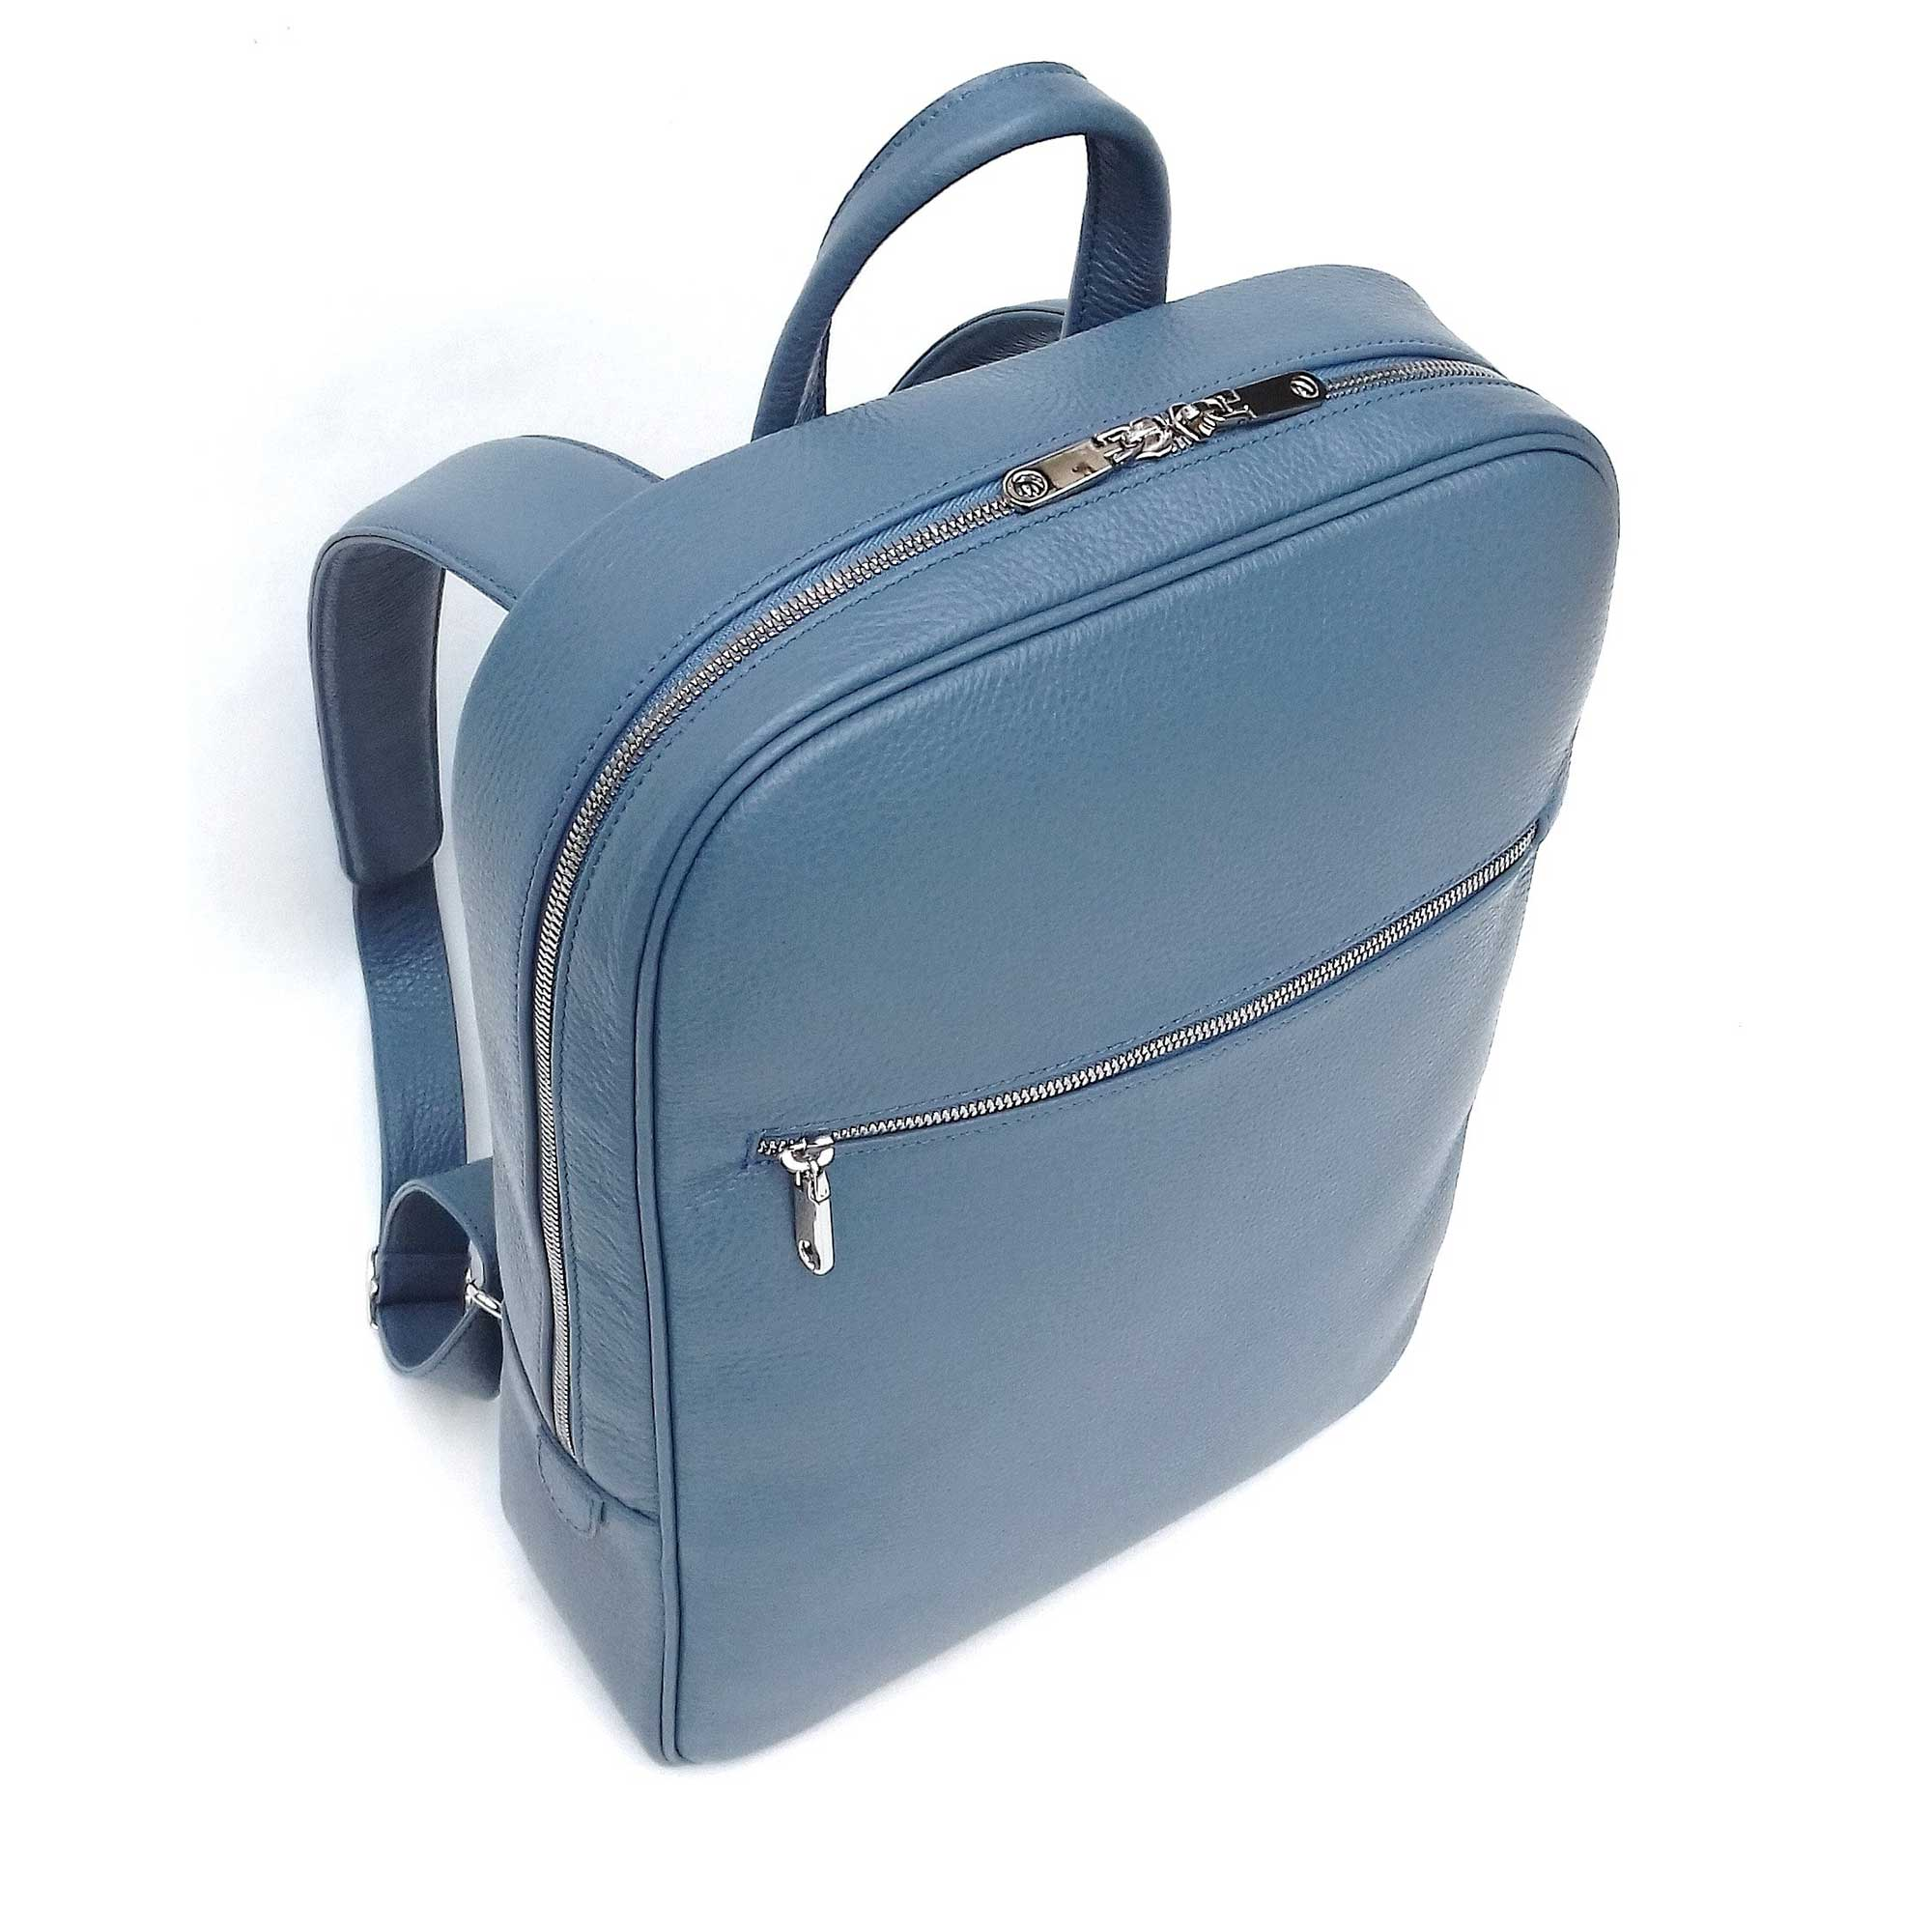 5ac6c11cd58f5f Backpack, Italian Leather Backpack Light Blue, Top Front View - Made in  Italy for